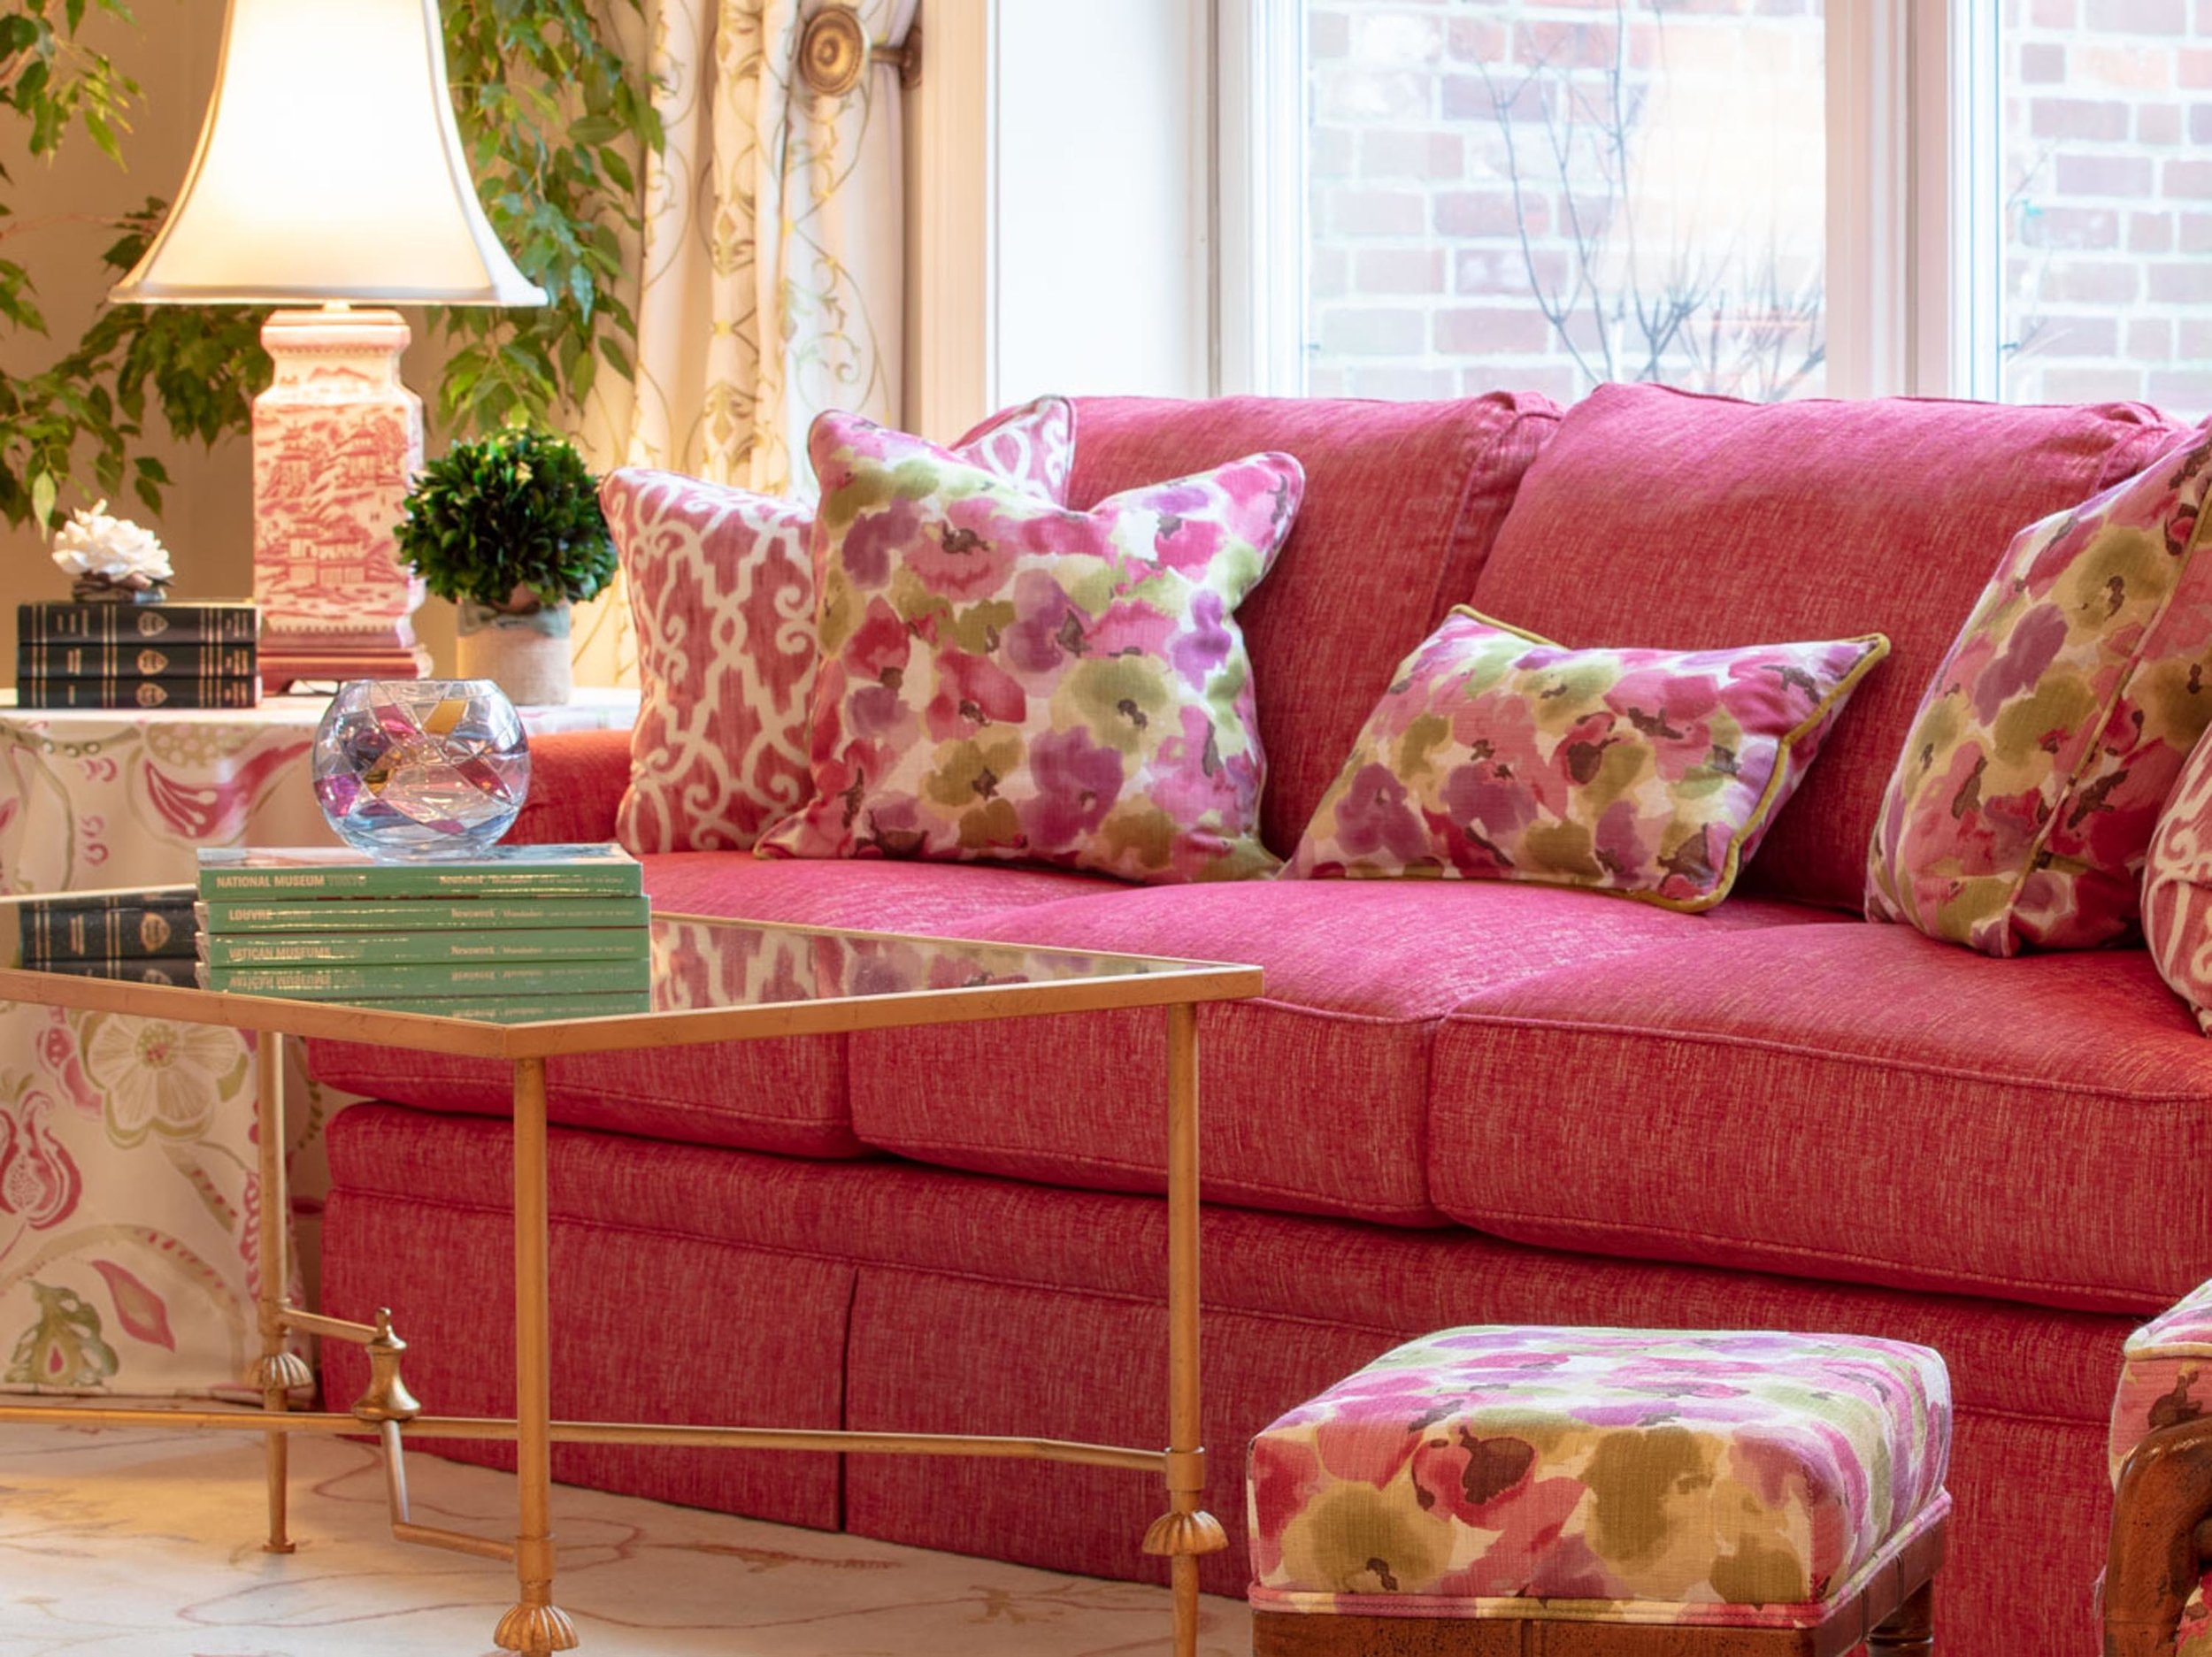 Center table with books on top, and a pink sofa with floral pillows